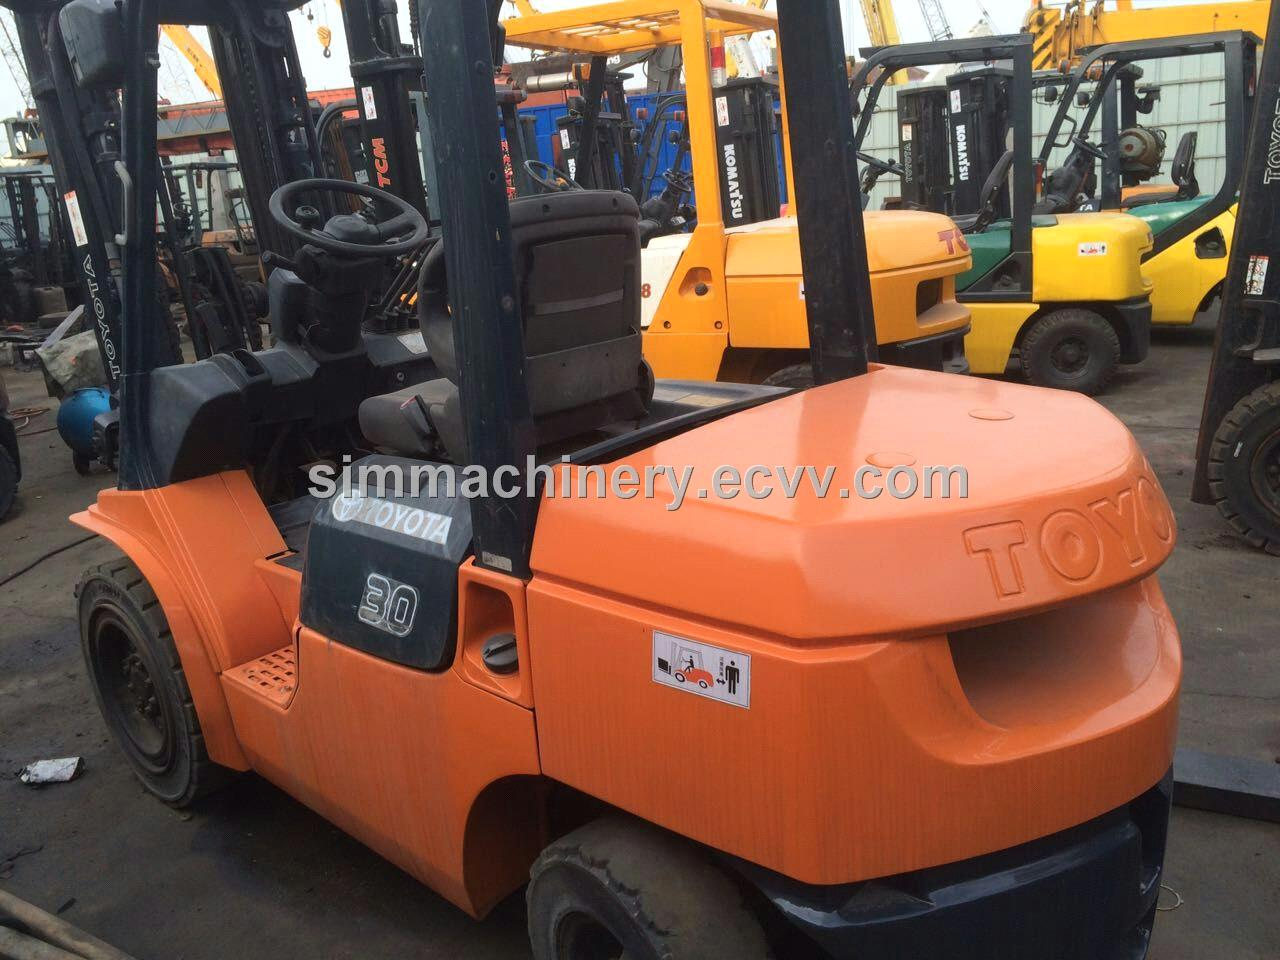 Used toyota 3t forklift with diesel engine second hand for Forklift motor for sale